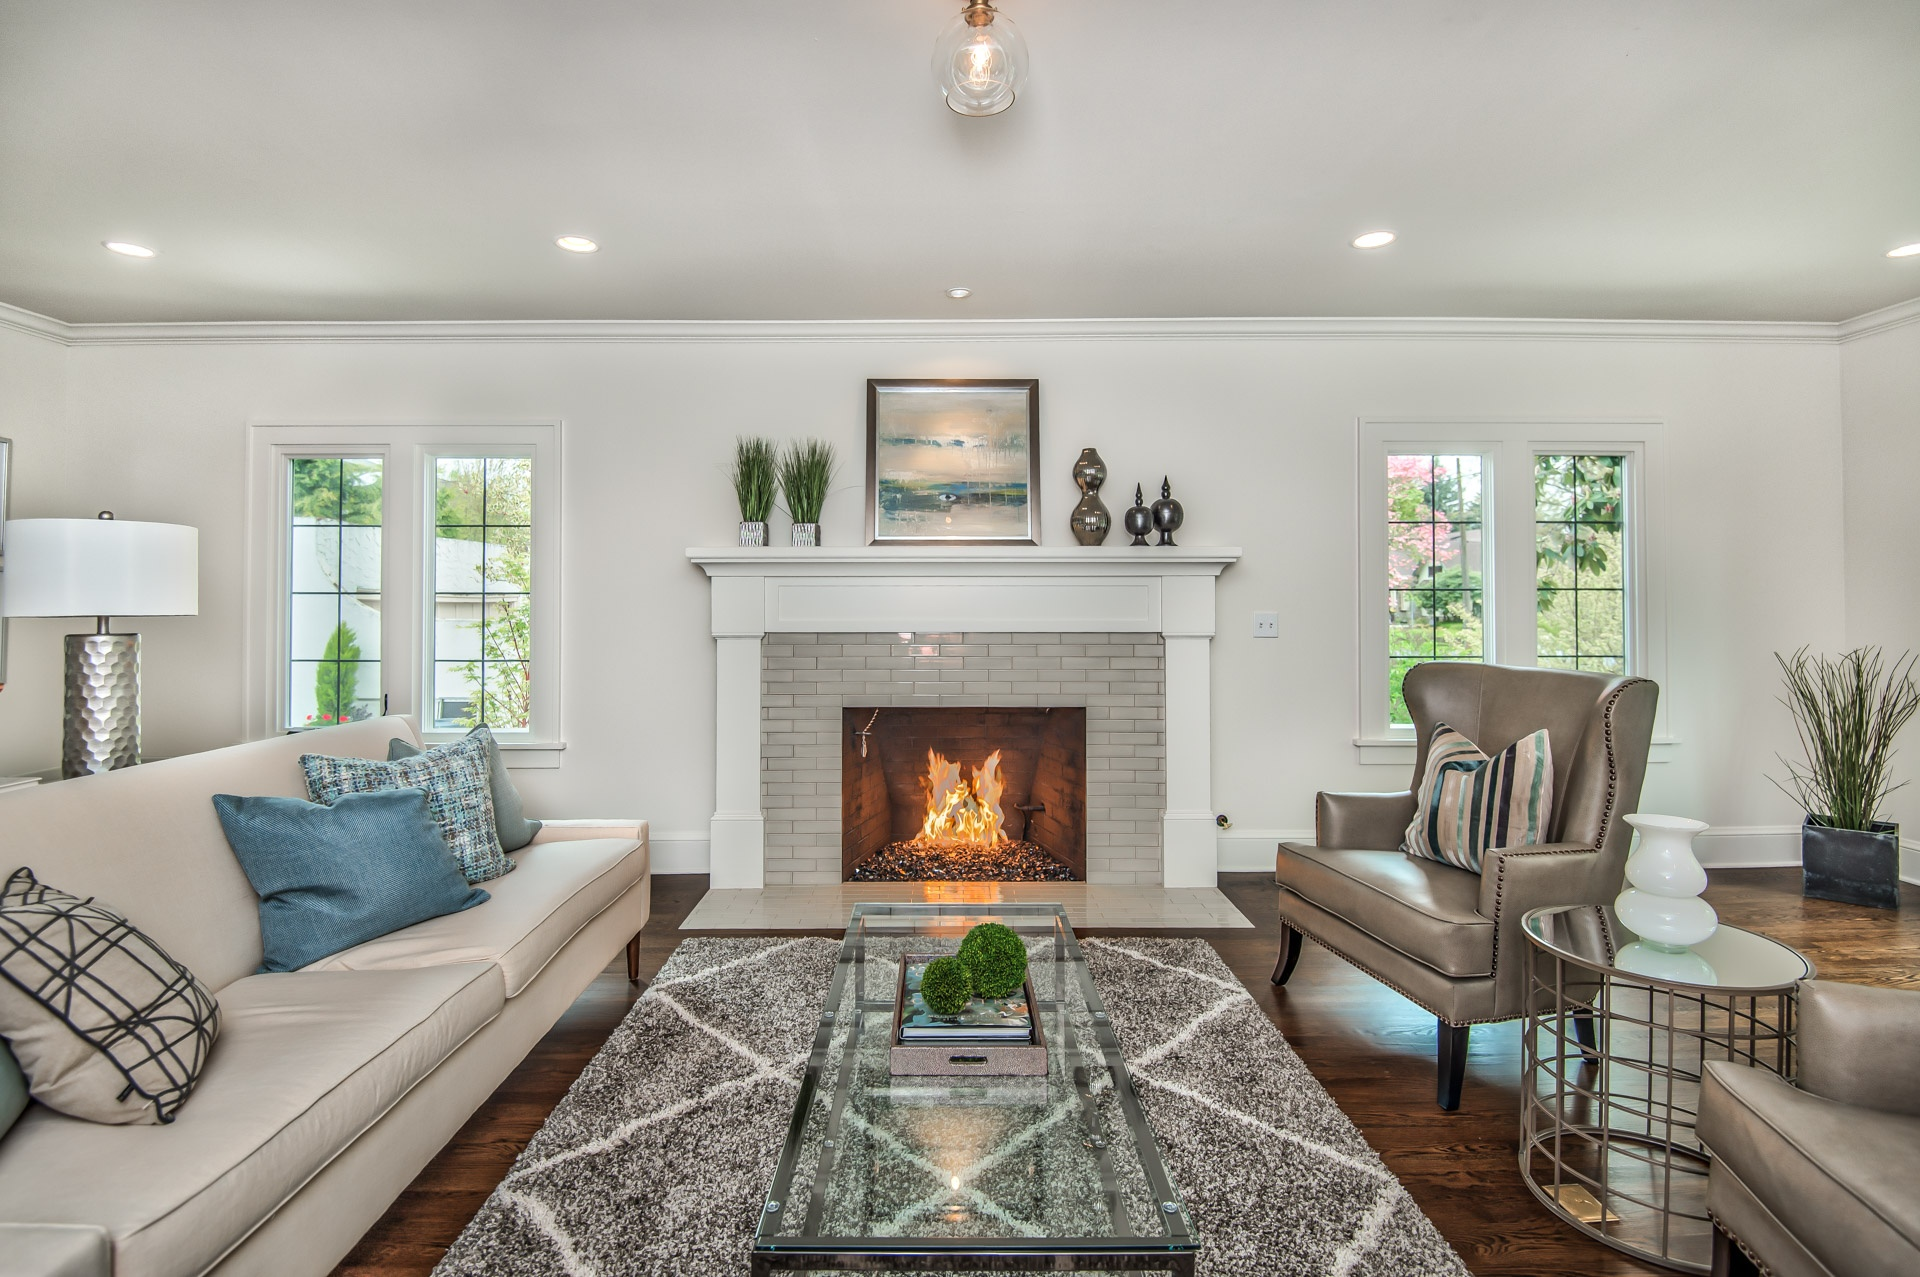 Cozy Fireplaces - Portland Home Design Trends.jpg